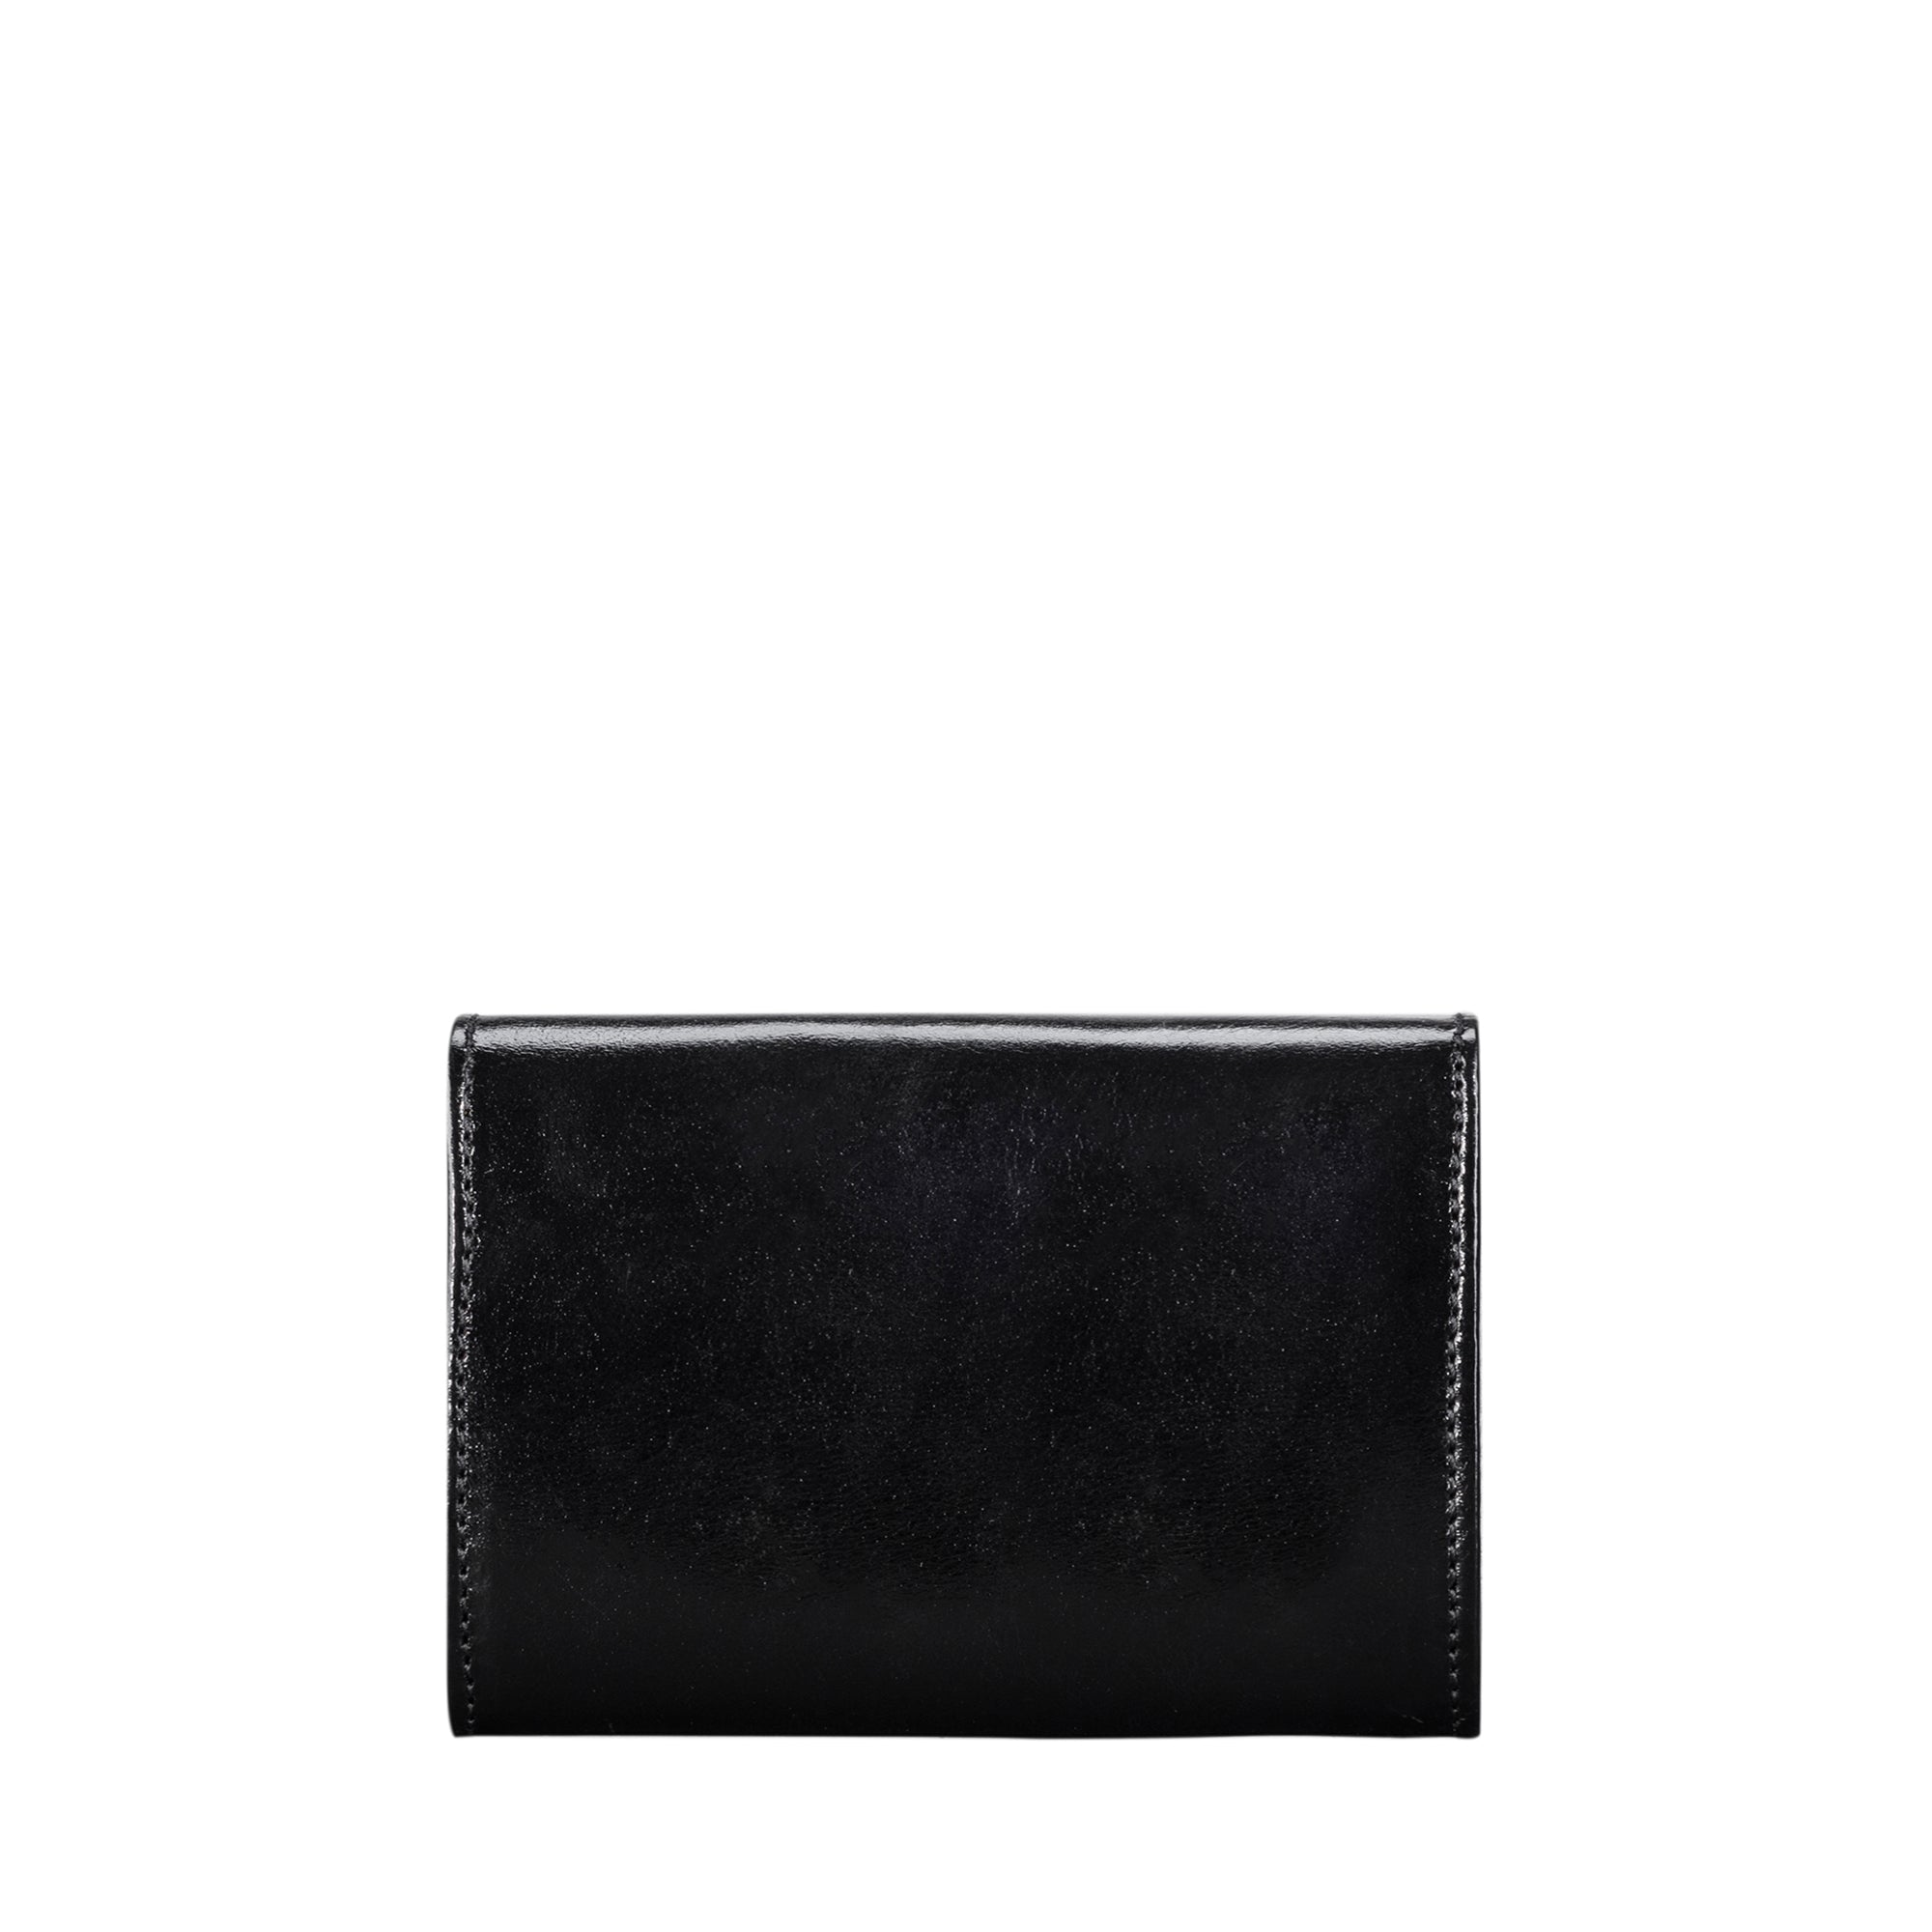 Image 2 of the 'Fontanelle' Compact Black Veg-Tanned Leather Purse